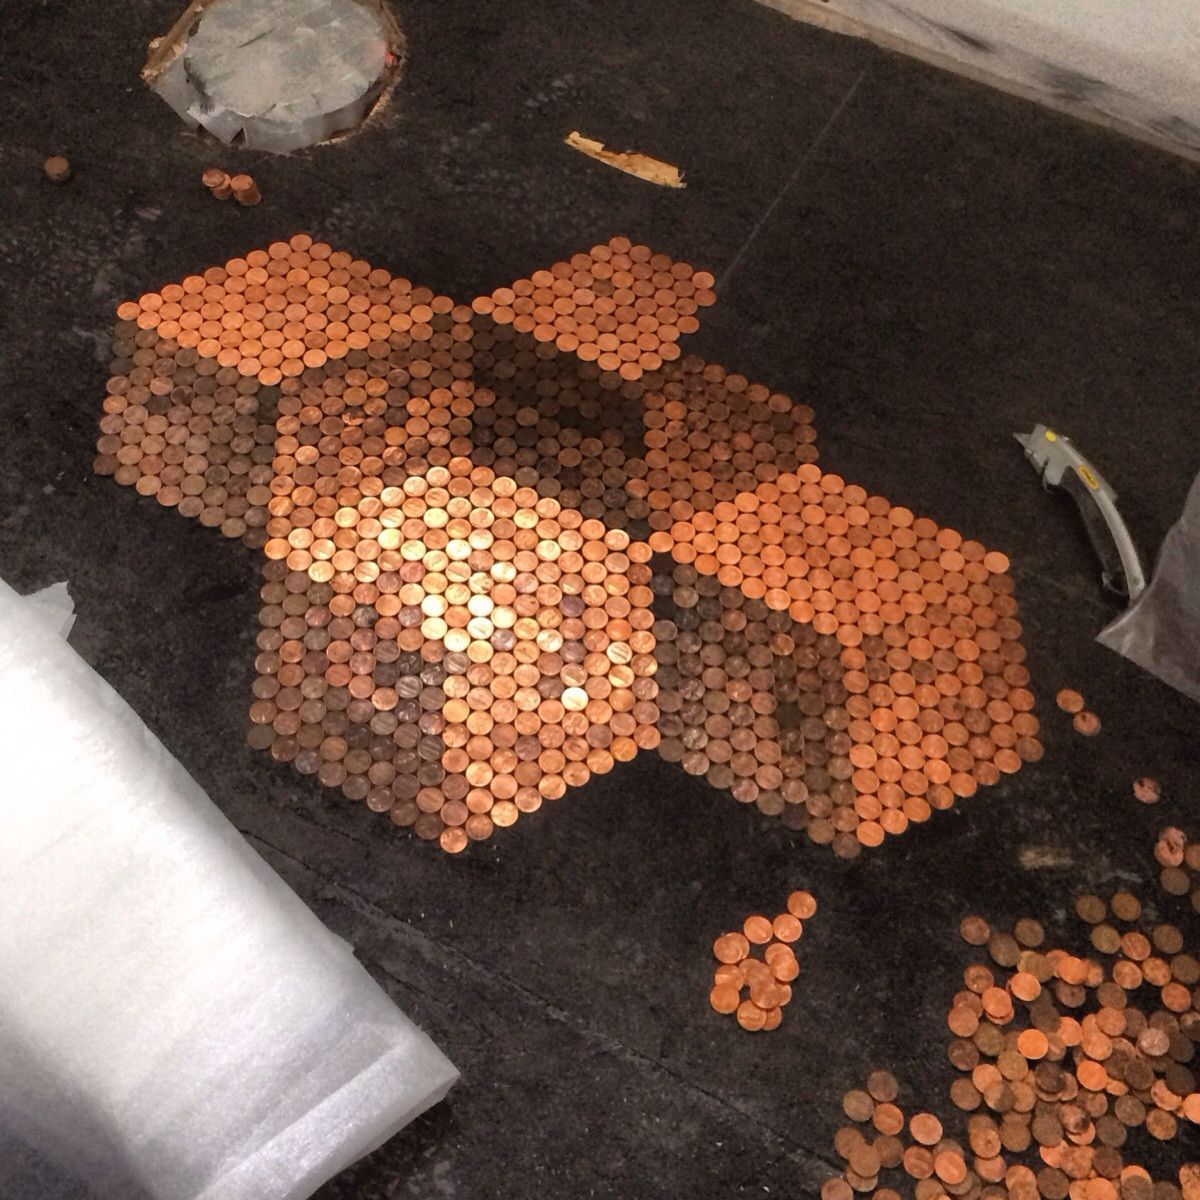 Using pennies to tile my bathroom floor. Here's what I have so far.